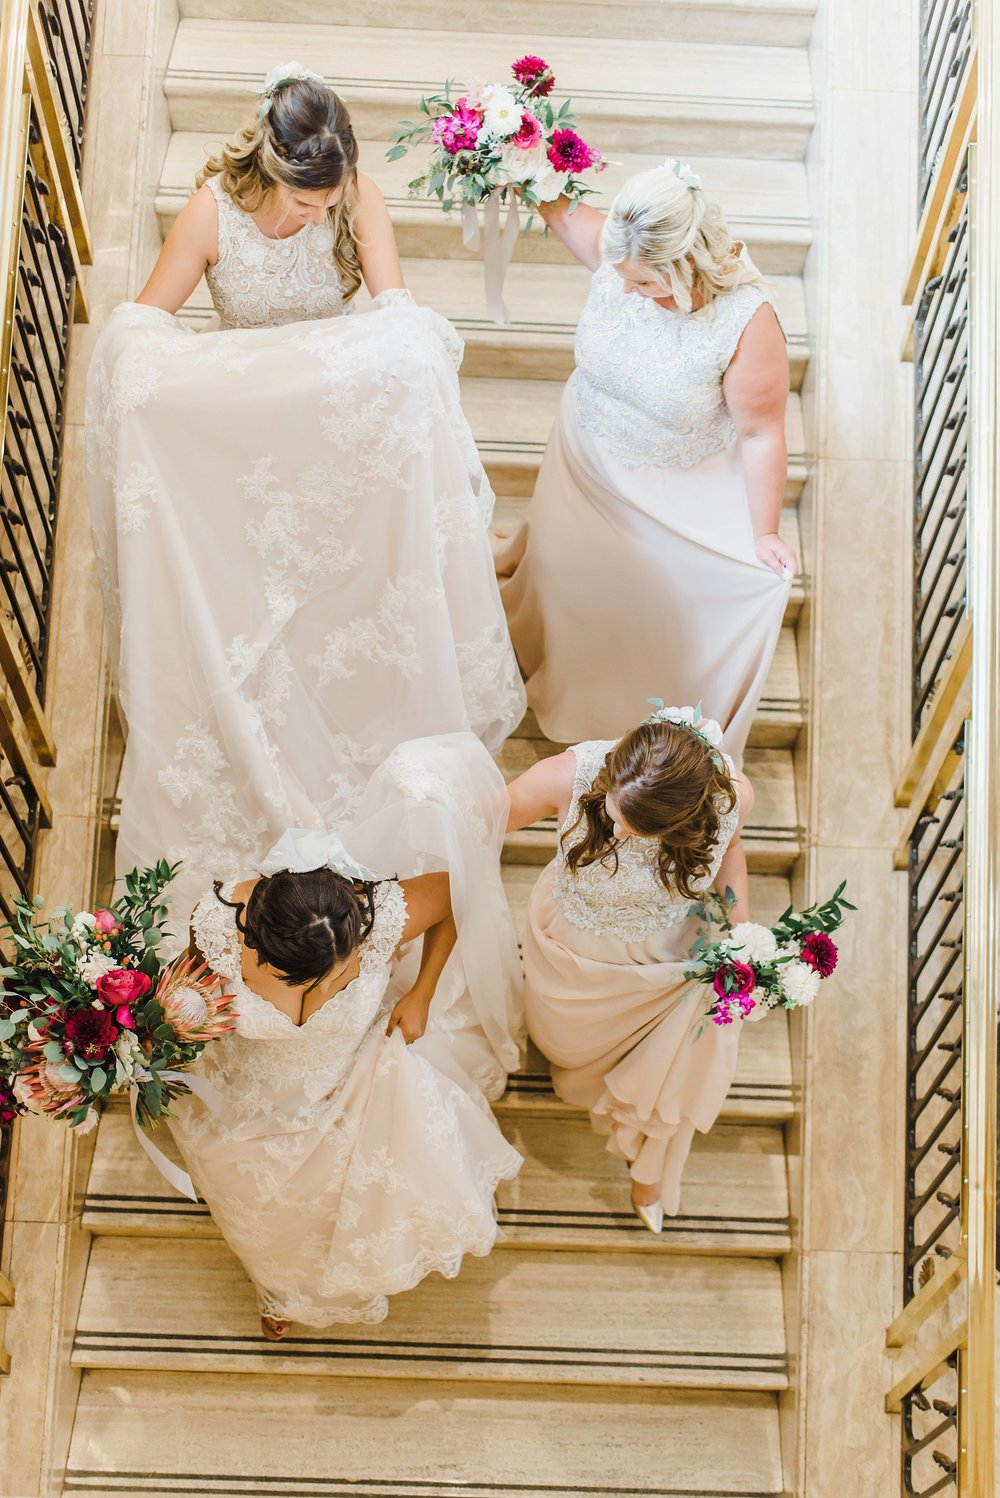 light airy indie fine art ottawa wedding photographer | Ali and Batoul Photography_1586.jpg